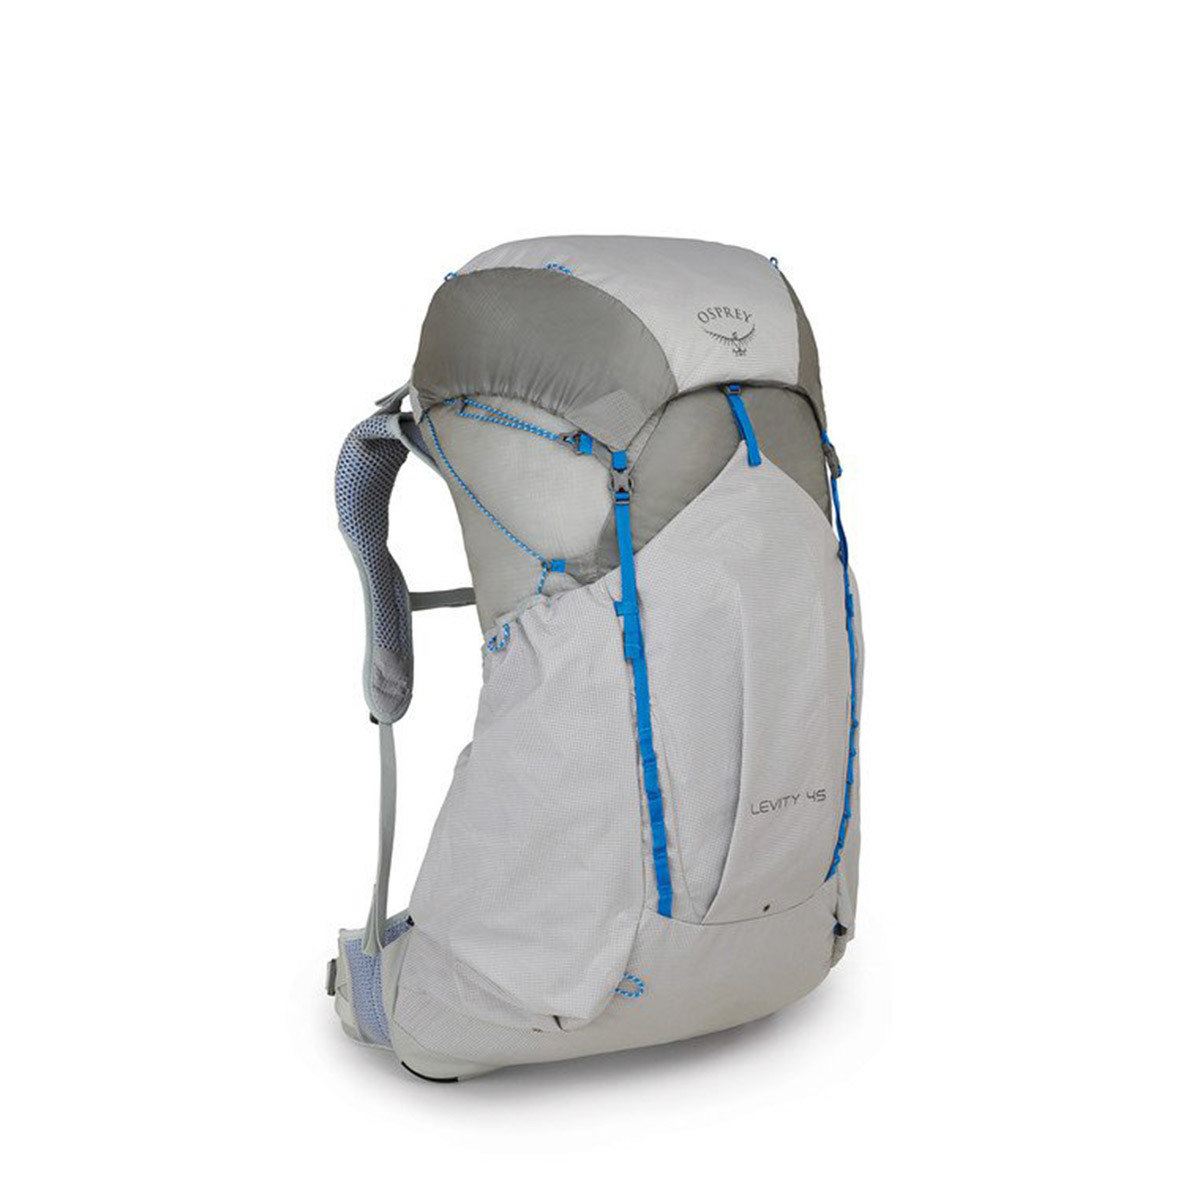 Osprey Levity 45 Superultralight Backpack JR1OsLev45